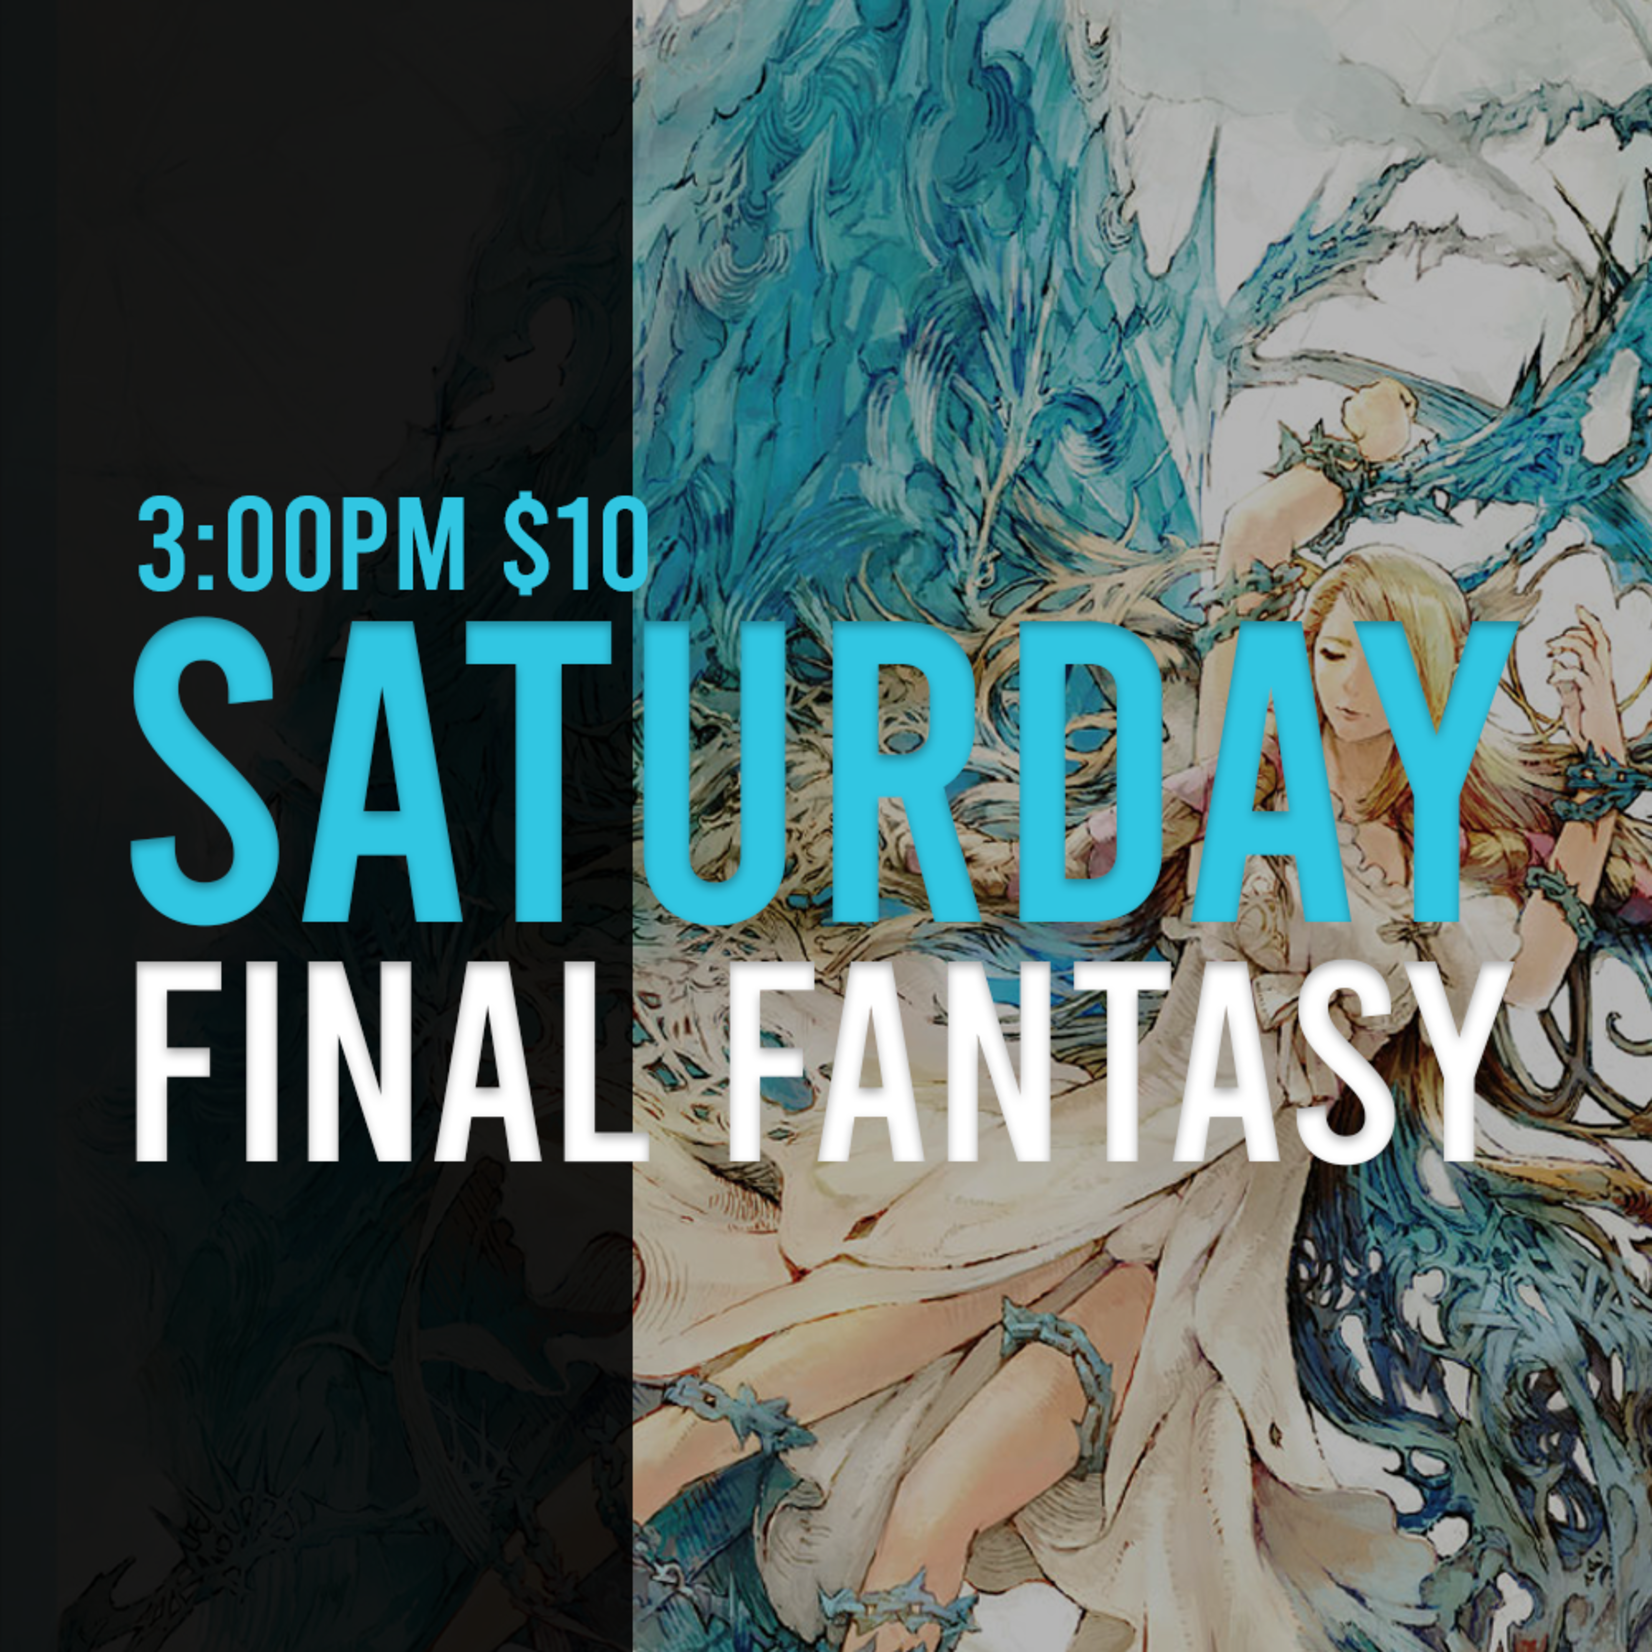 00/00 Saturday Final Fantasy Constructed - October 9th @ 3 PM